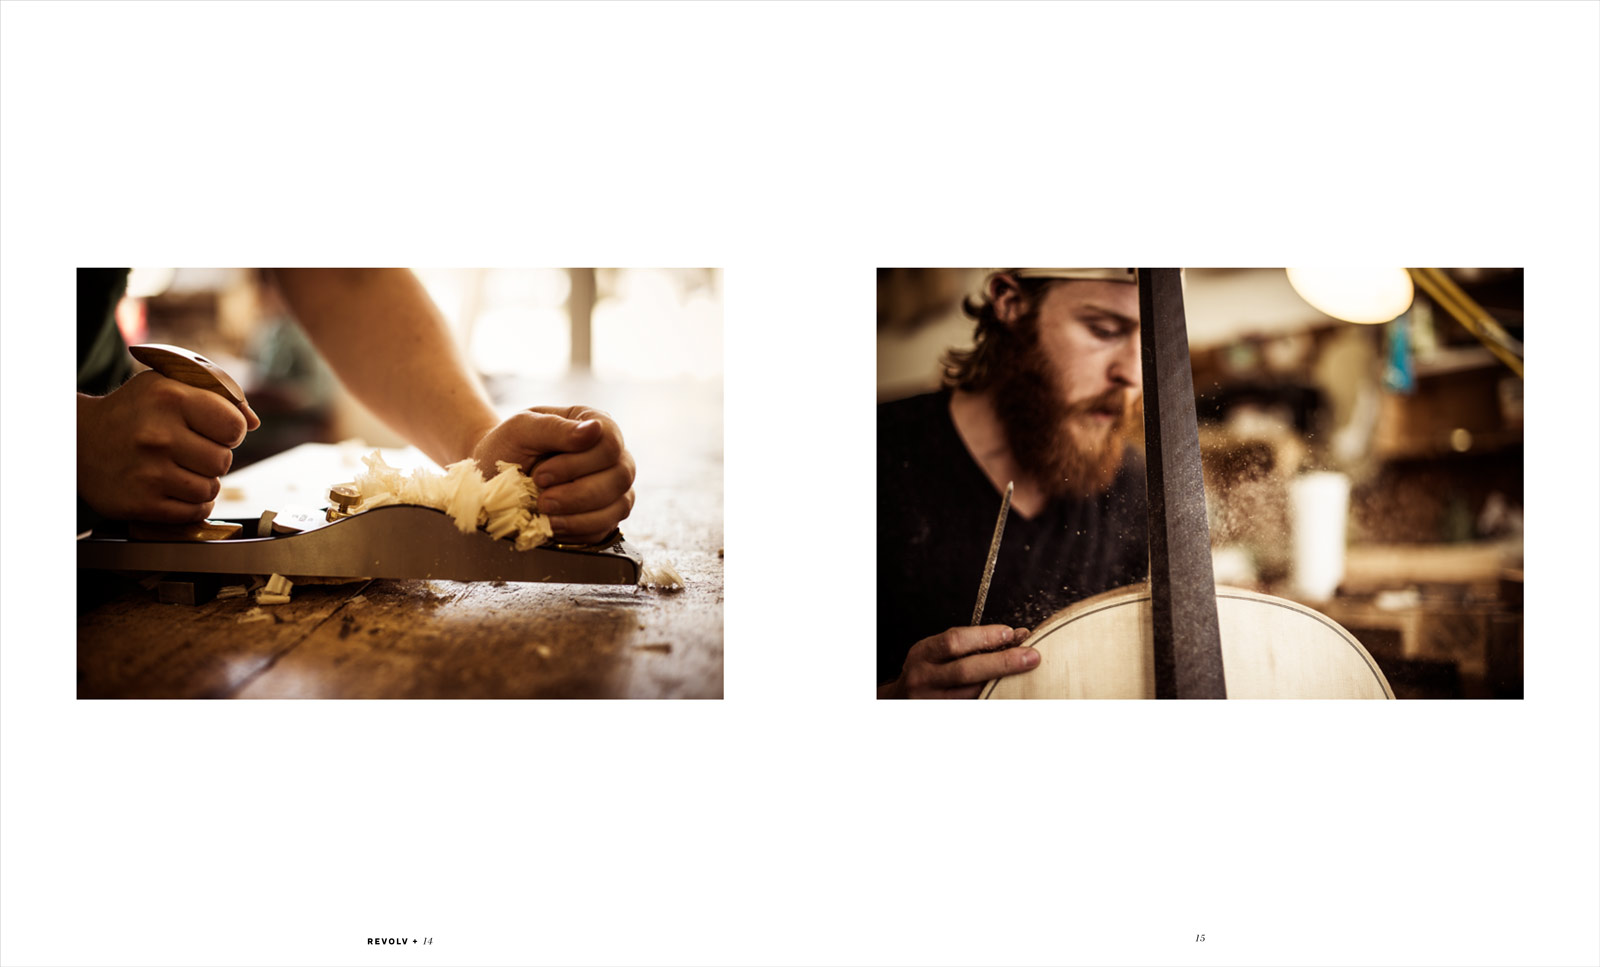 Violin Making School of America editorial for Revolv Magazine - Salt Lake City, Utah.